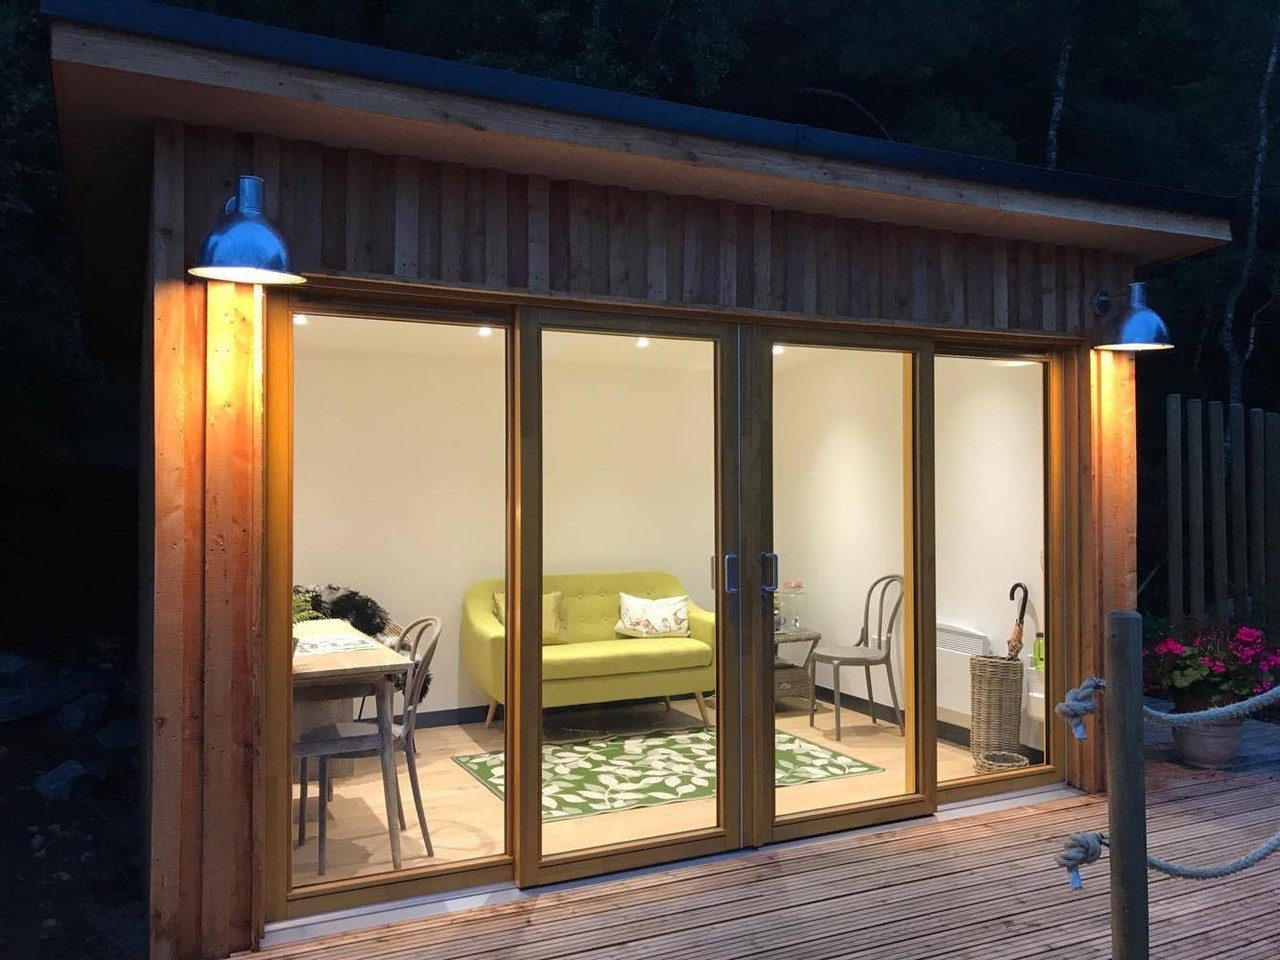 Summer house in Ballater built by Papillon Designs & Landscaping